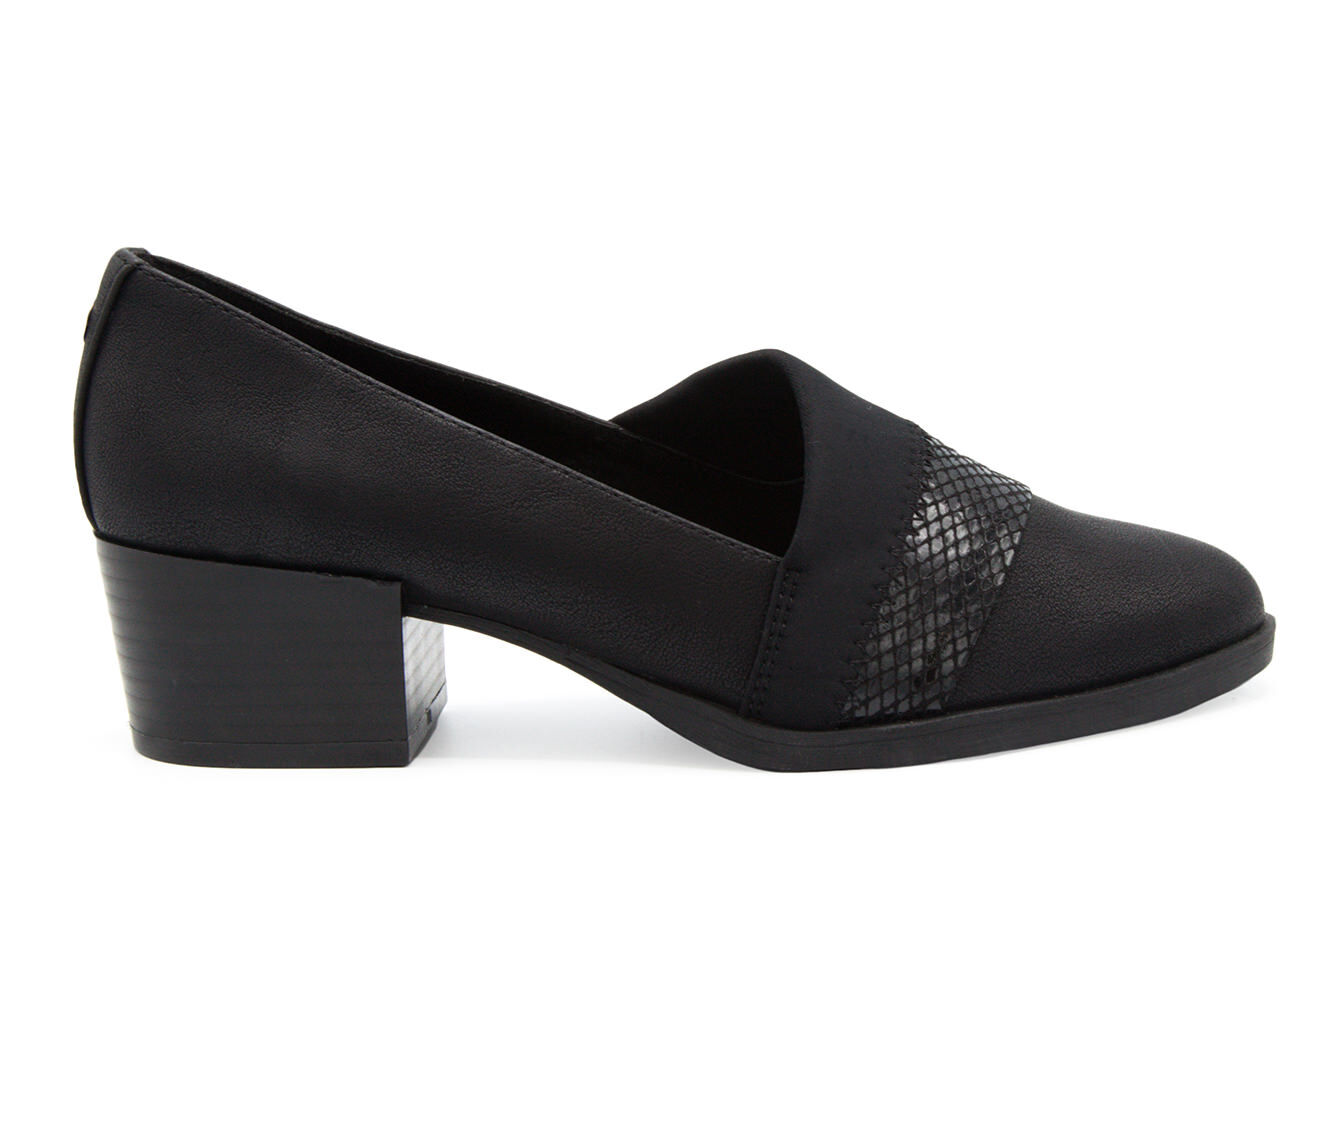 Women's Gloria Vanderbilt Pippa Shoes Black